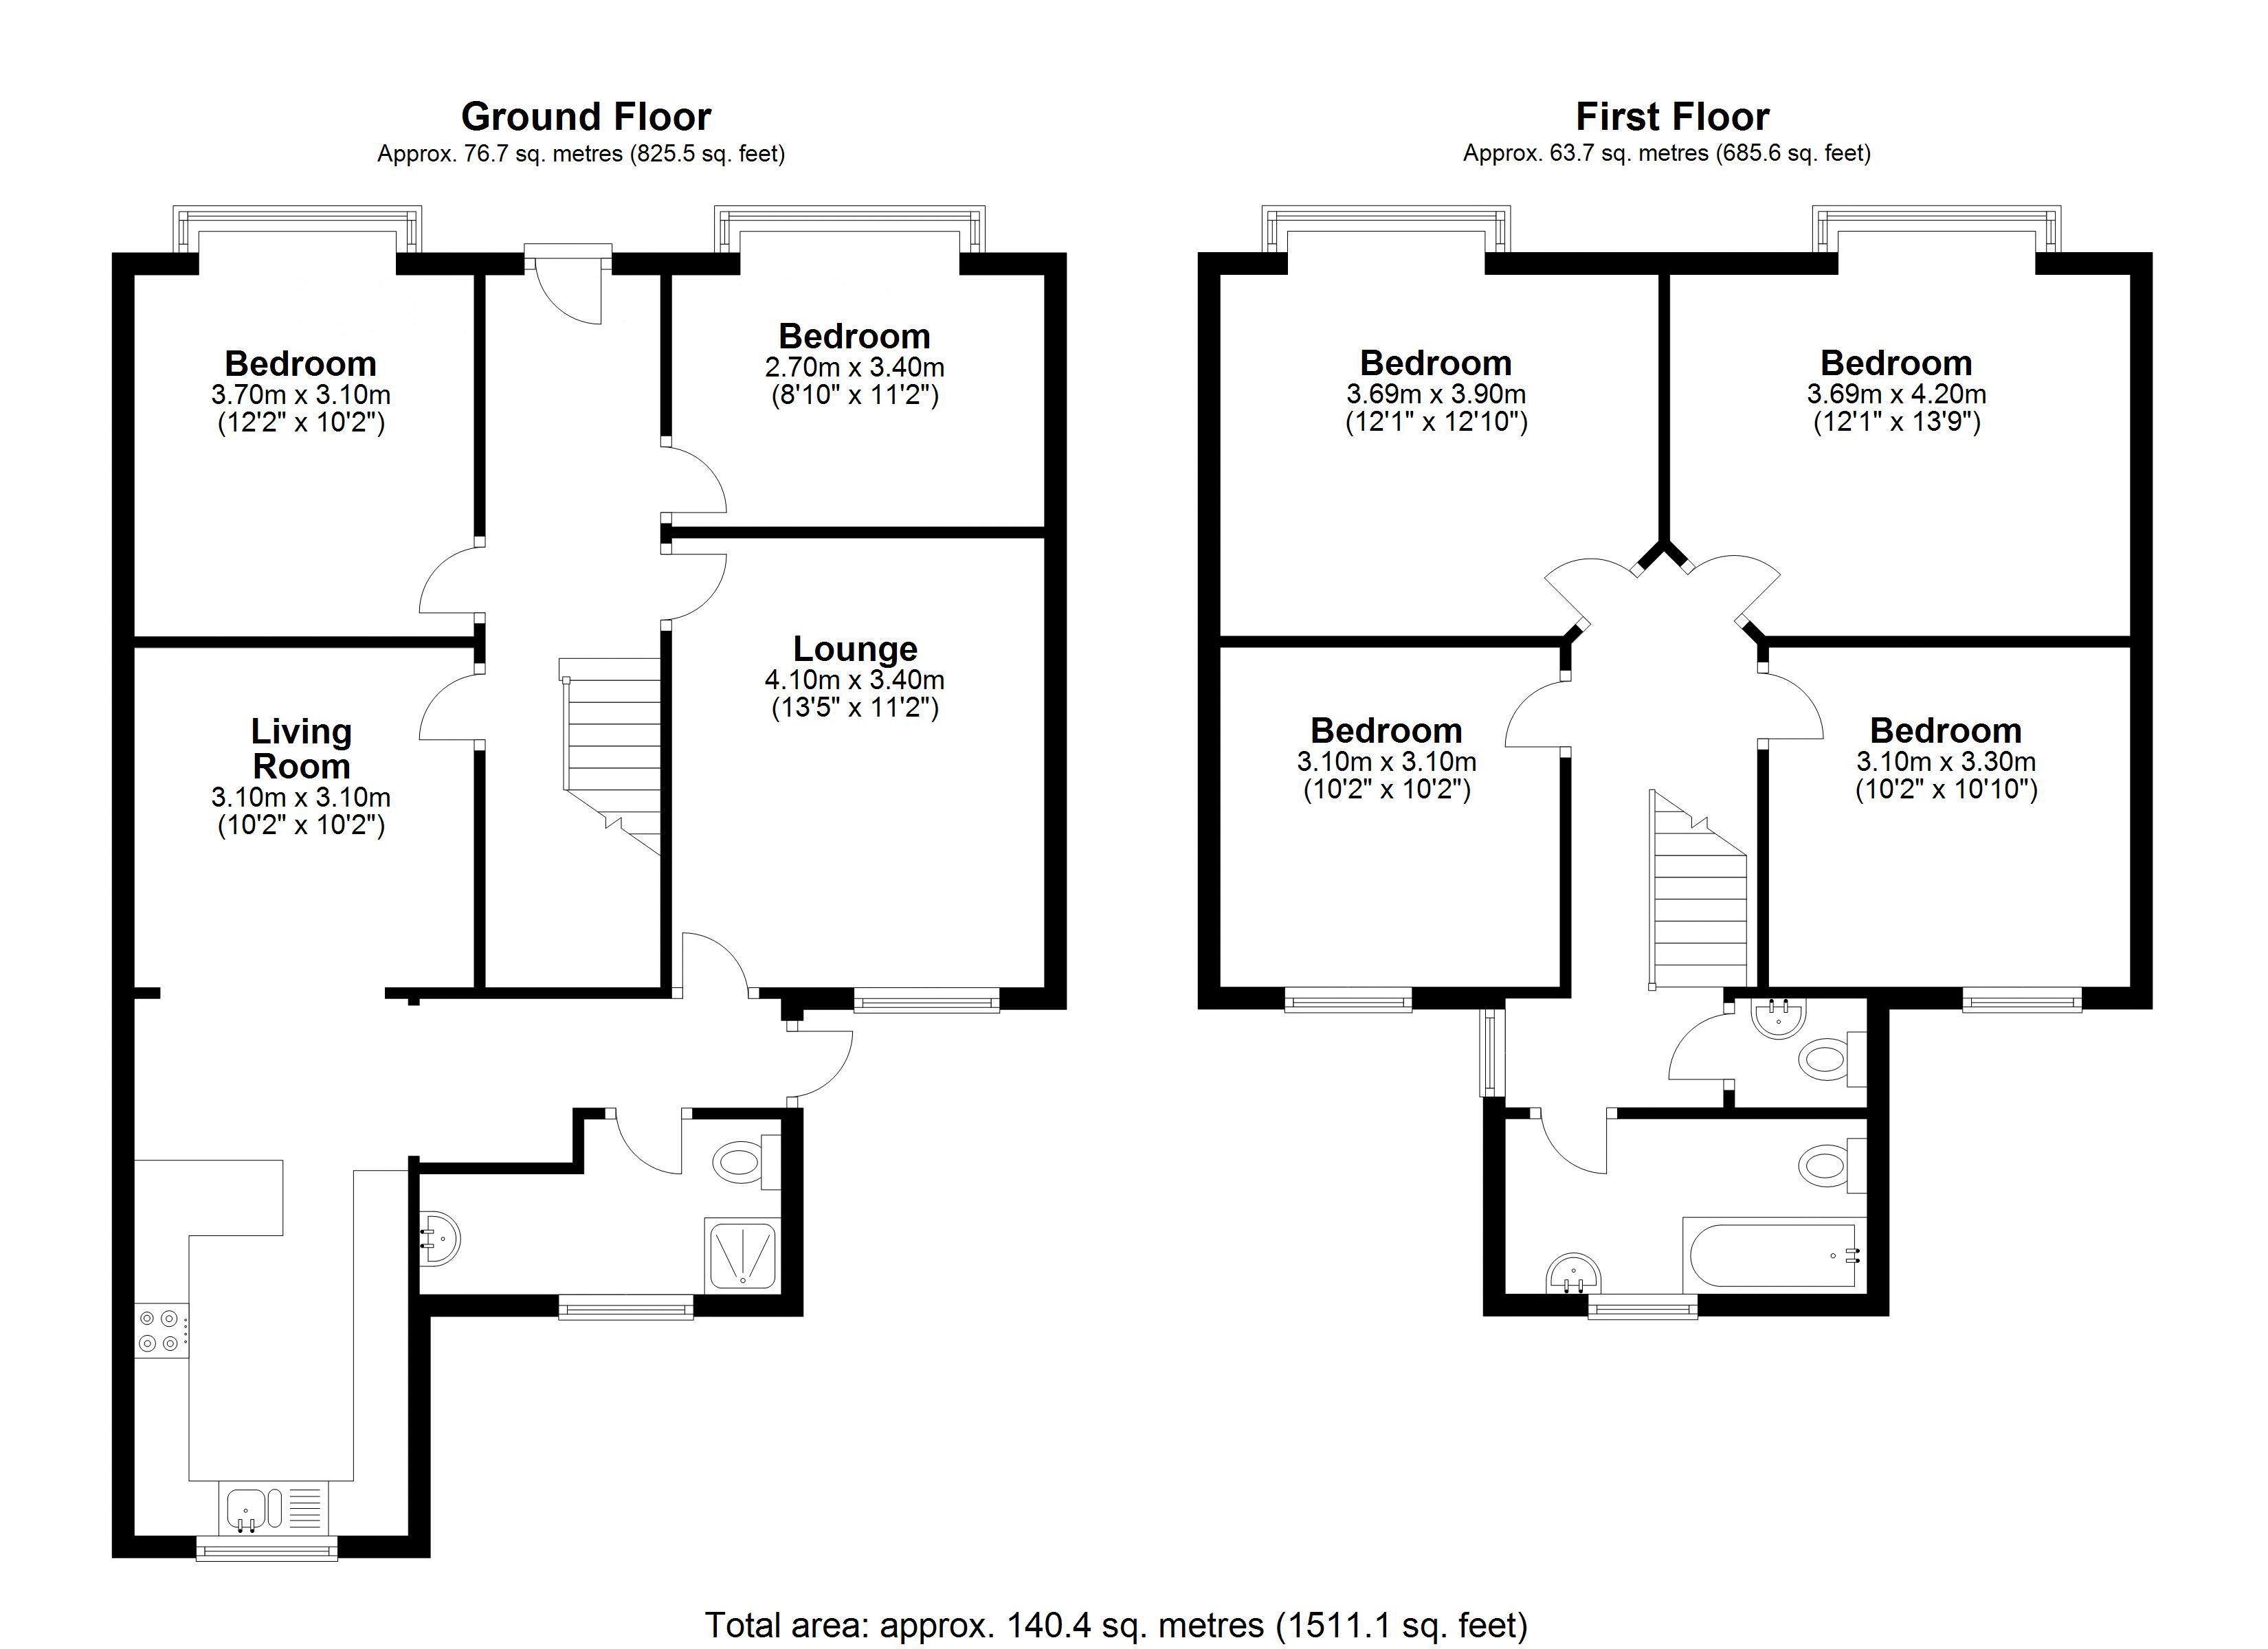 Floor plans for Riley Road, Brighton property for sale in Coombe Road, Brighton by Coapt